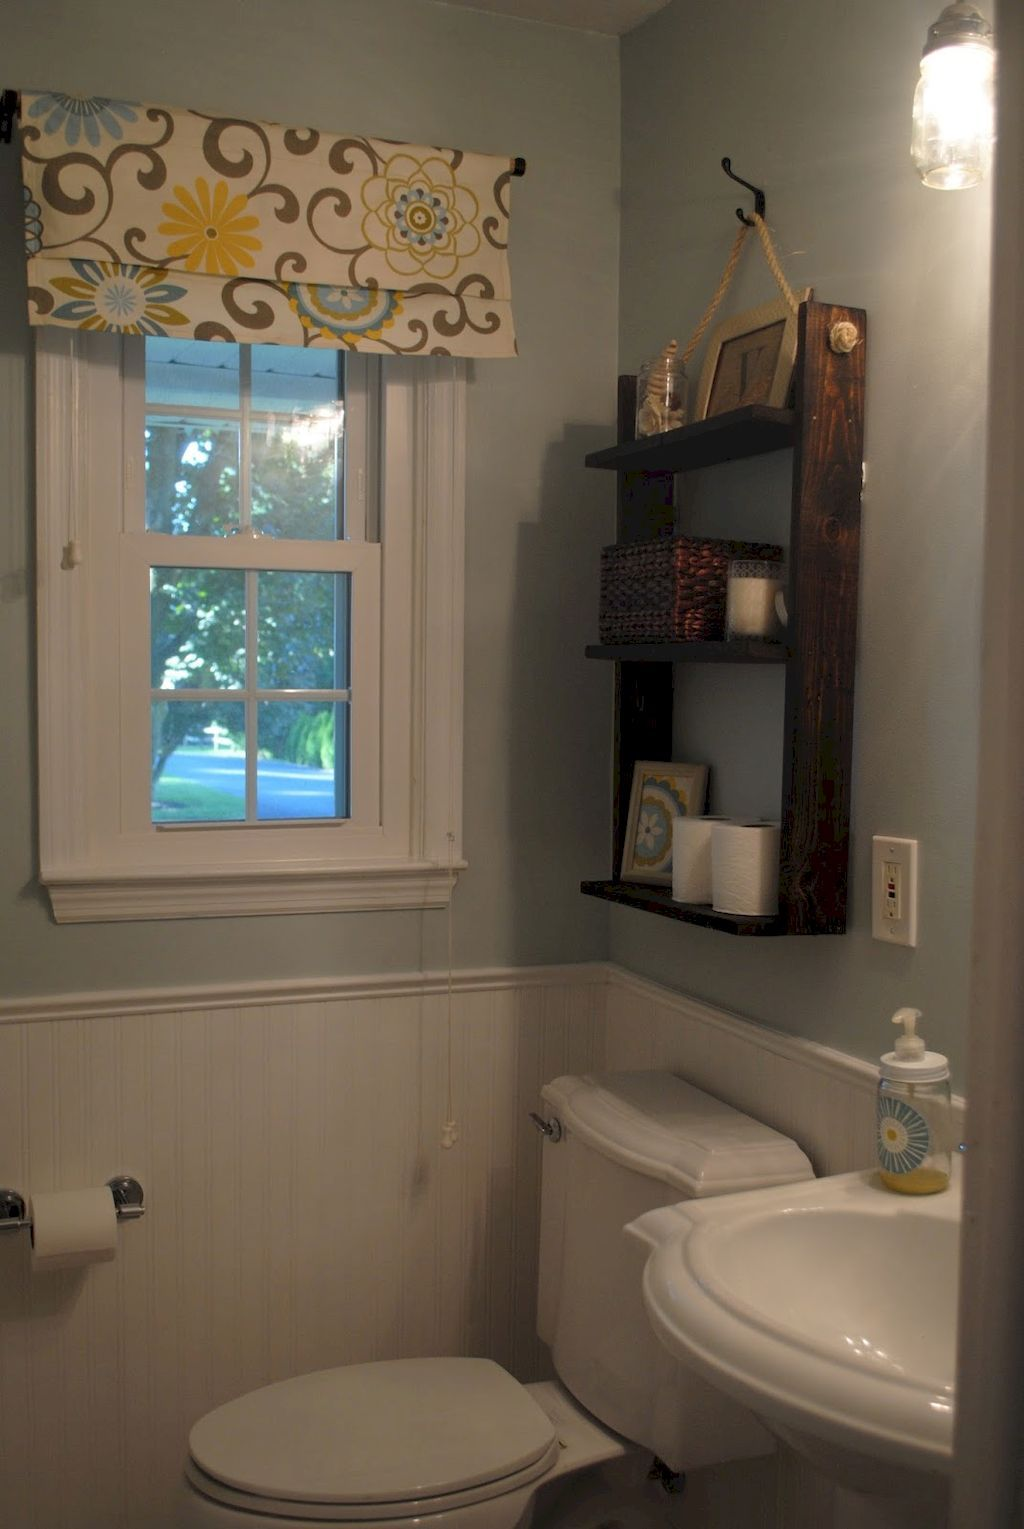 50 Best Small Bathroom Remodel Ideas On A Budget  Small Bathroom Fascinating Bathroom Renovation Ideas For Tight Budget Design Inspiration